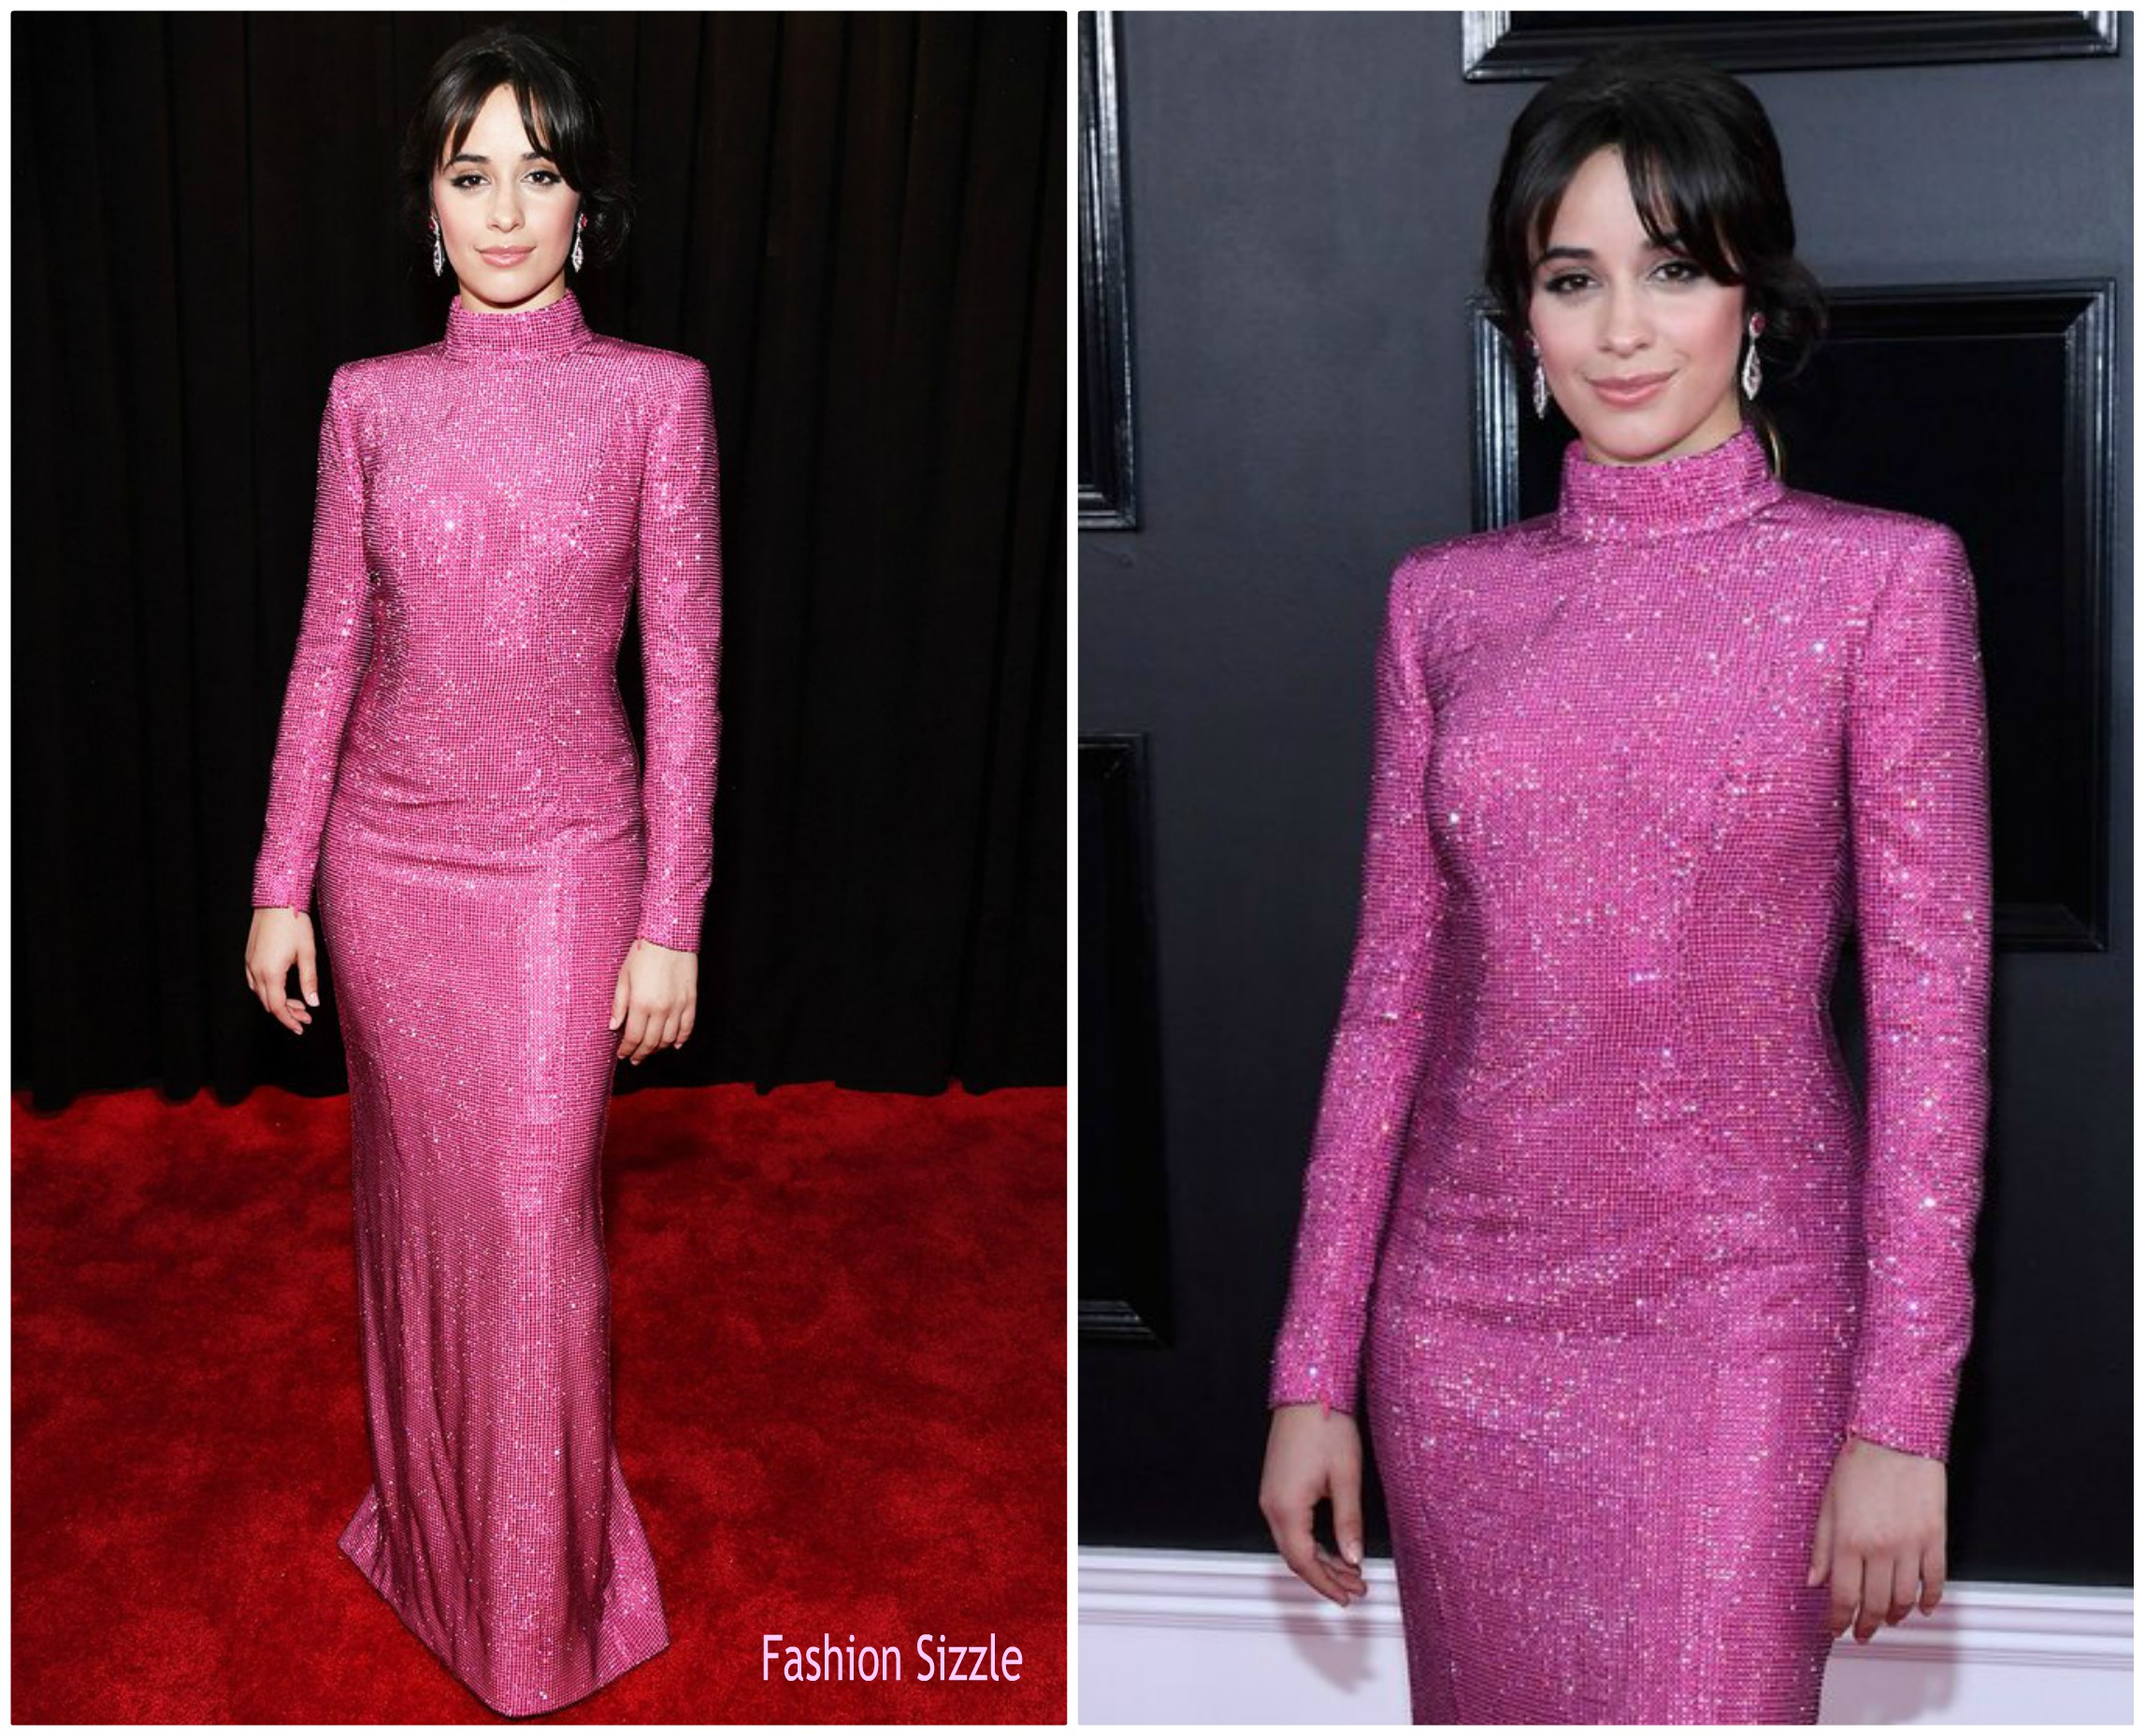 camila cabello in armani prive 2019 grammy awards fashionsizzle camila cabello in armani prive 2019